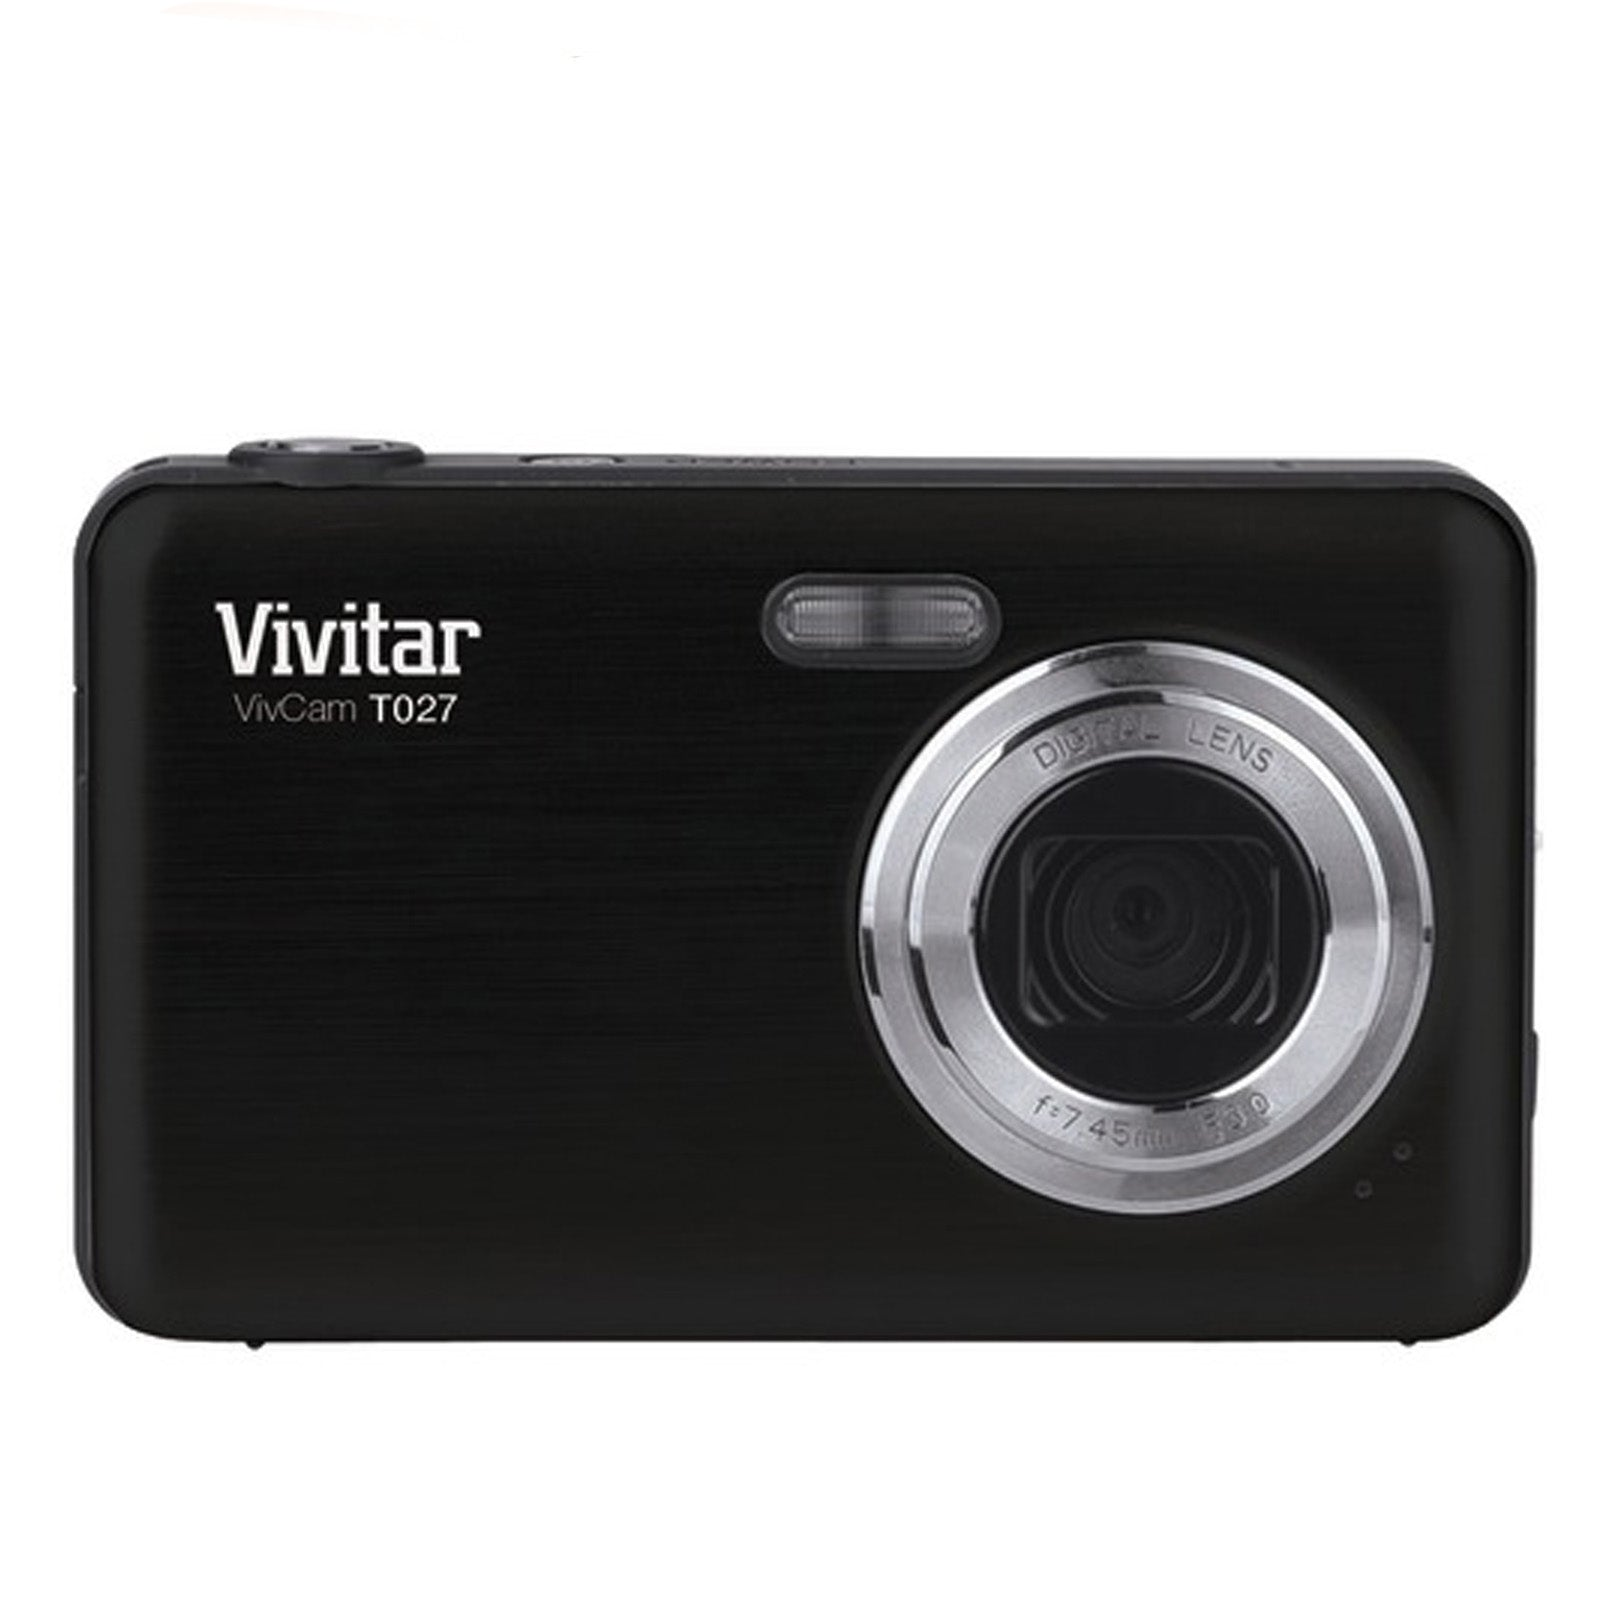 Vivitar Digital Camera with 12.1 Megapixels-Black